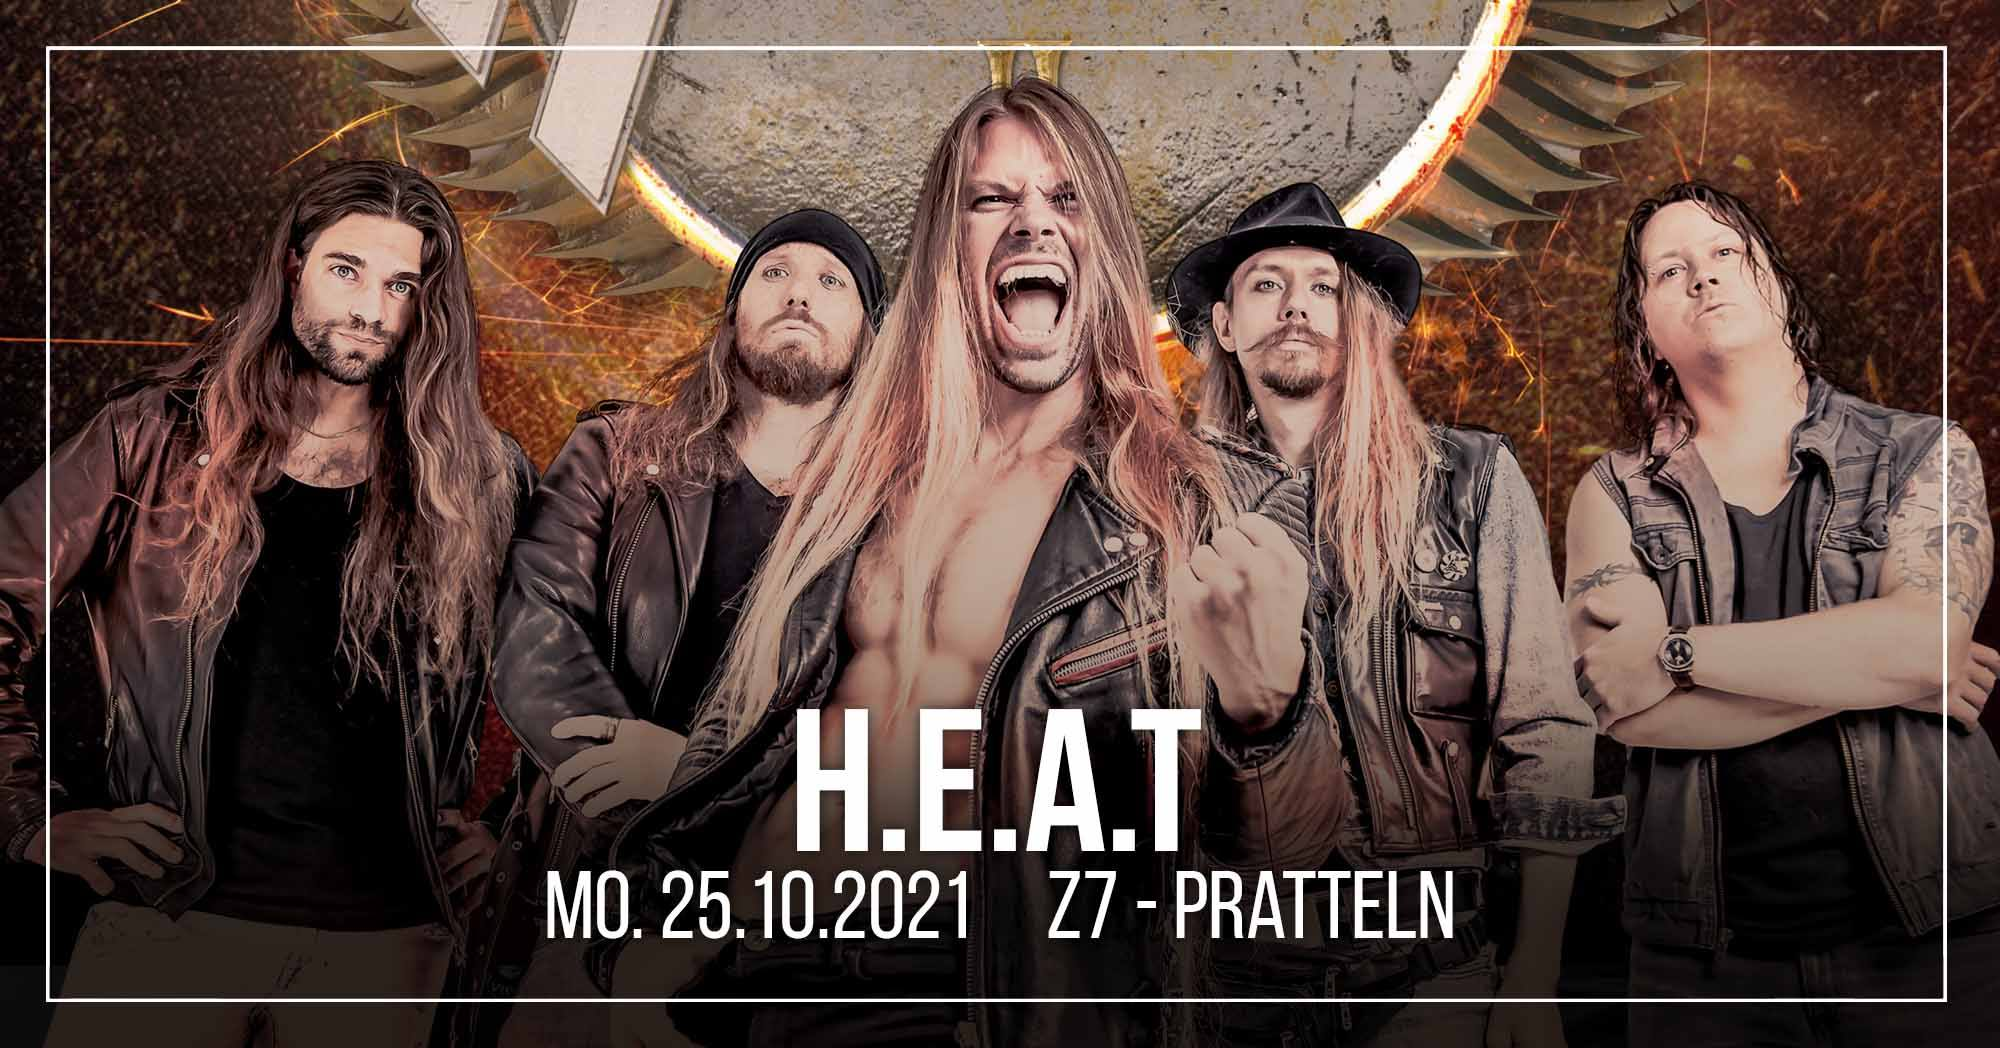 HEAT - Sign In The Northern Sky Tour 2021 l Pratteln